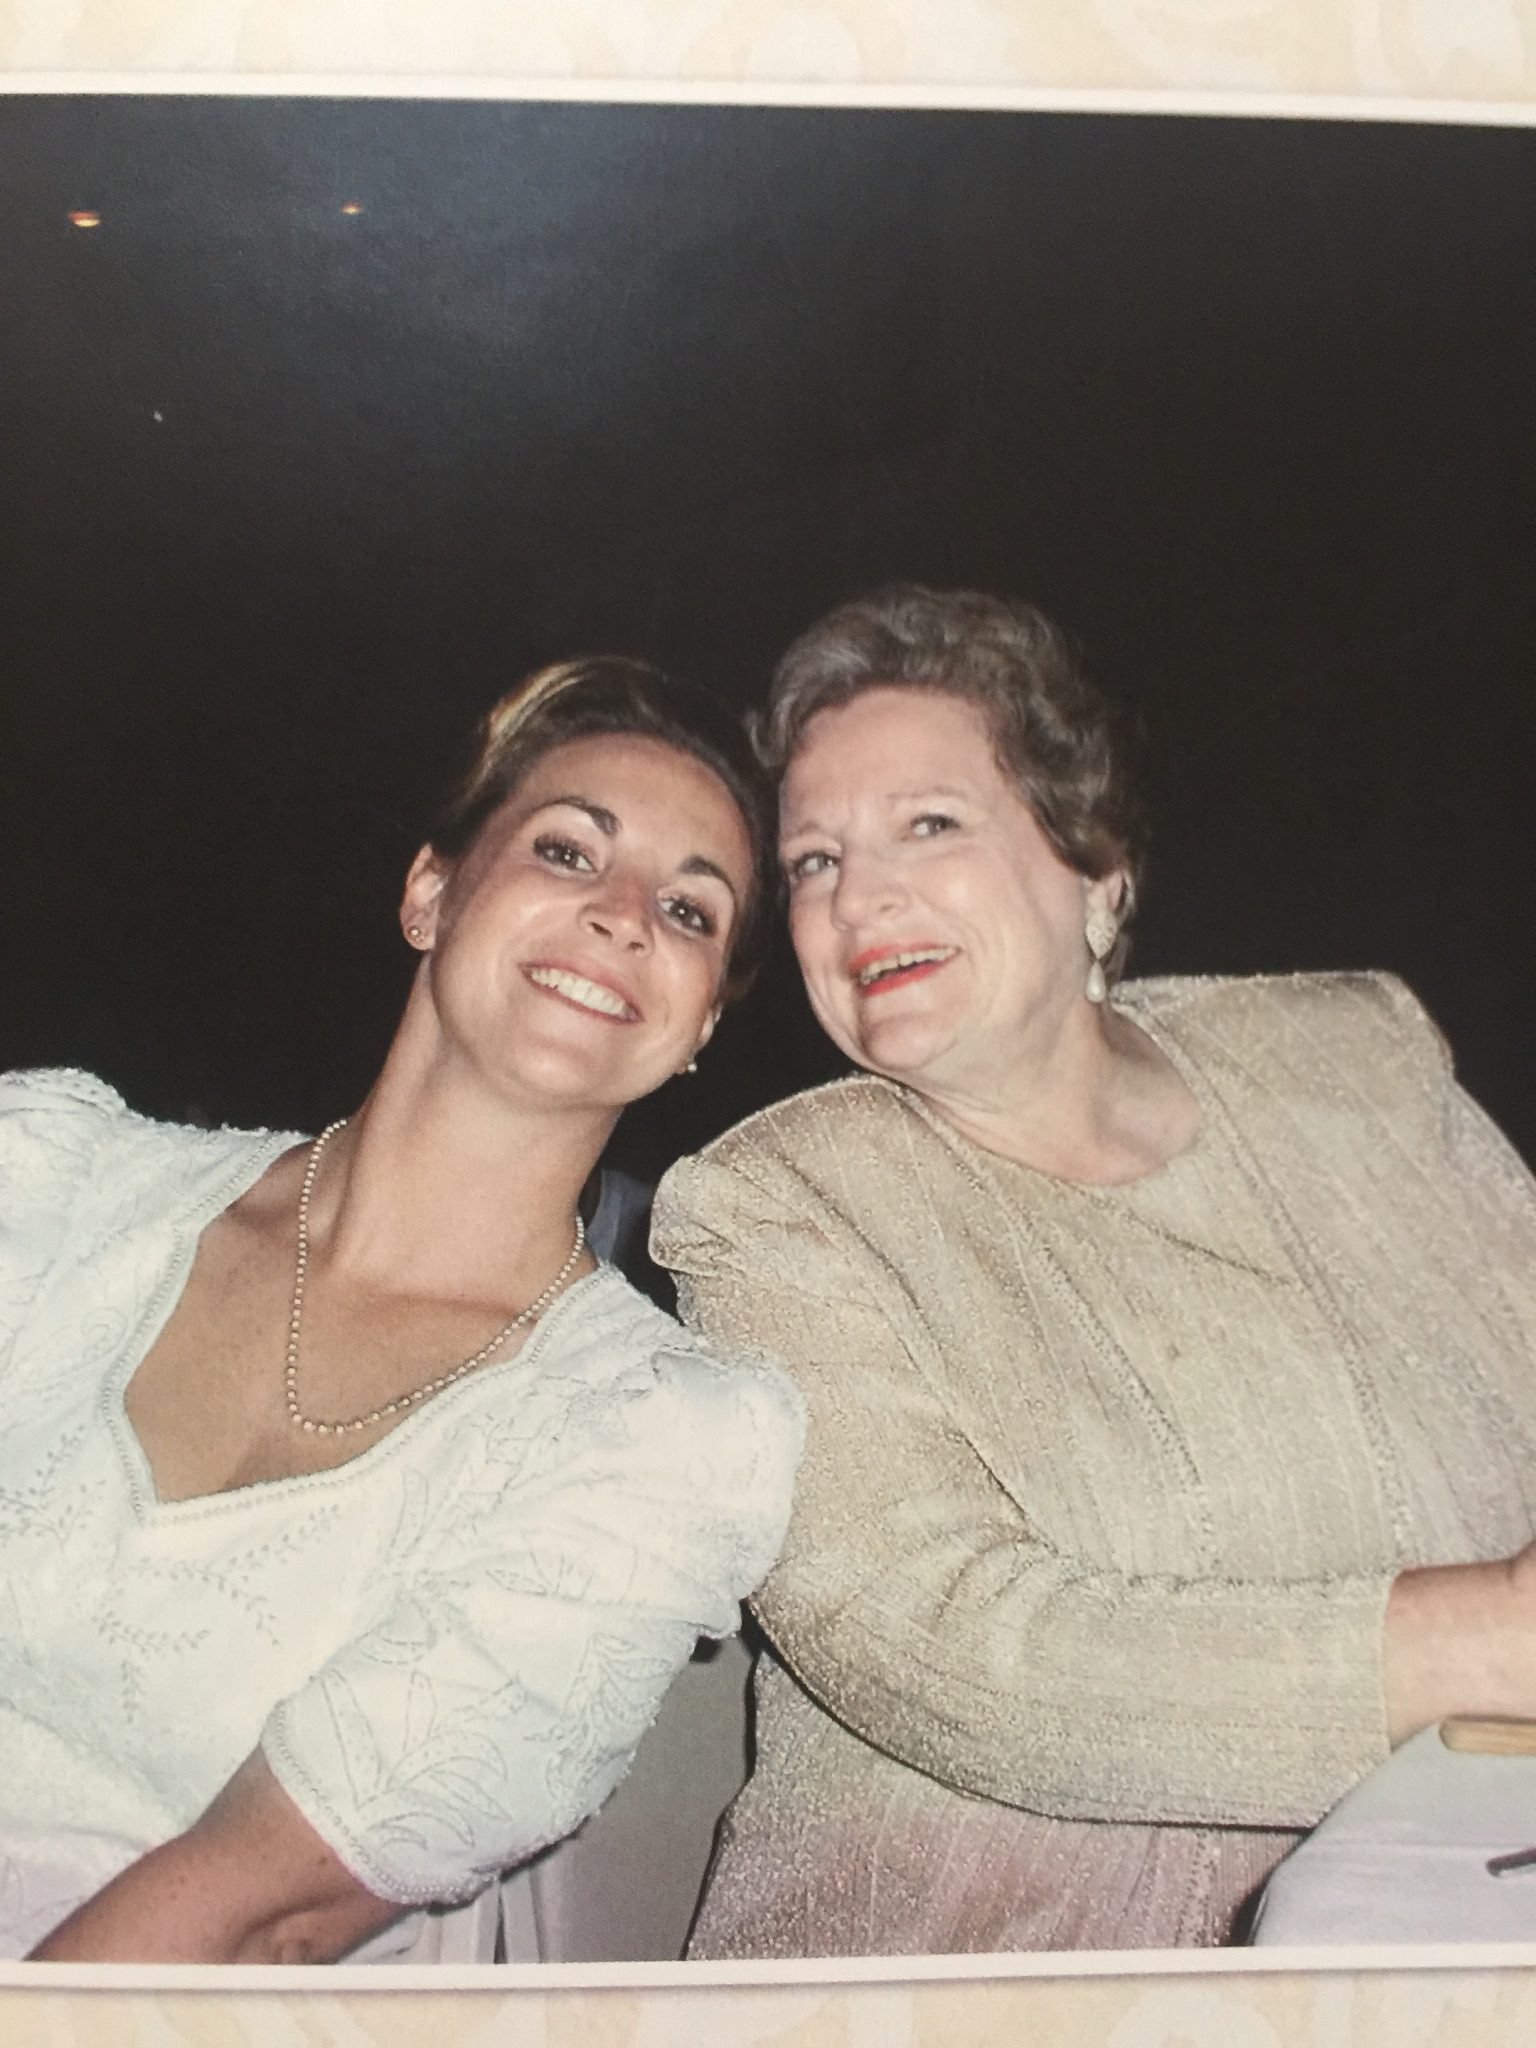 My Mother<br /> My Maid of Honor<br /> My heart is heavy<br /> I am so thankful to have had you as my mom.  I'll miss you and I'll see you when it's time for me to get my wings.